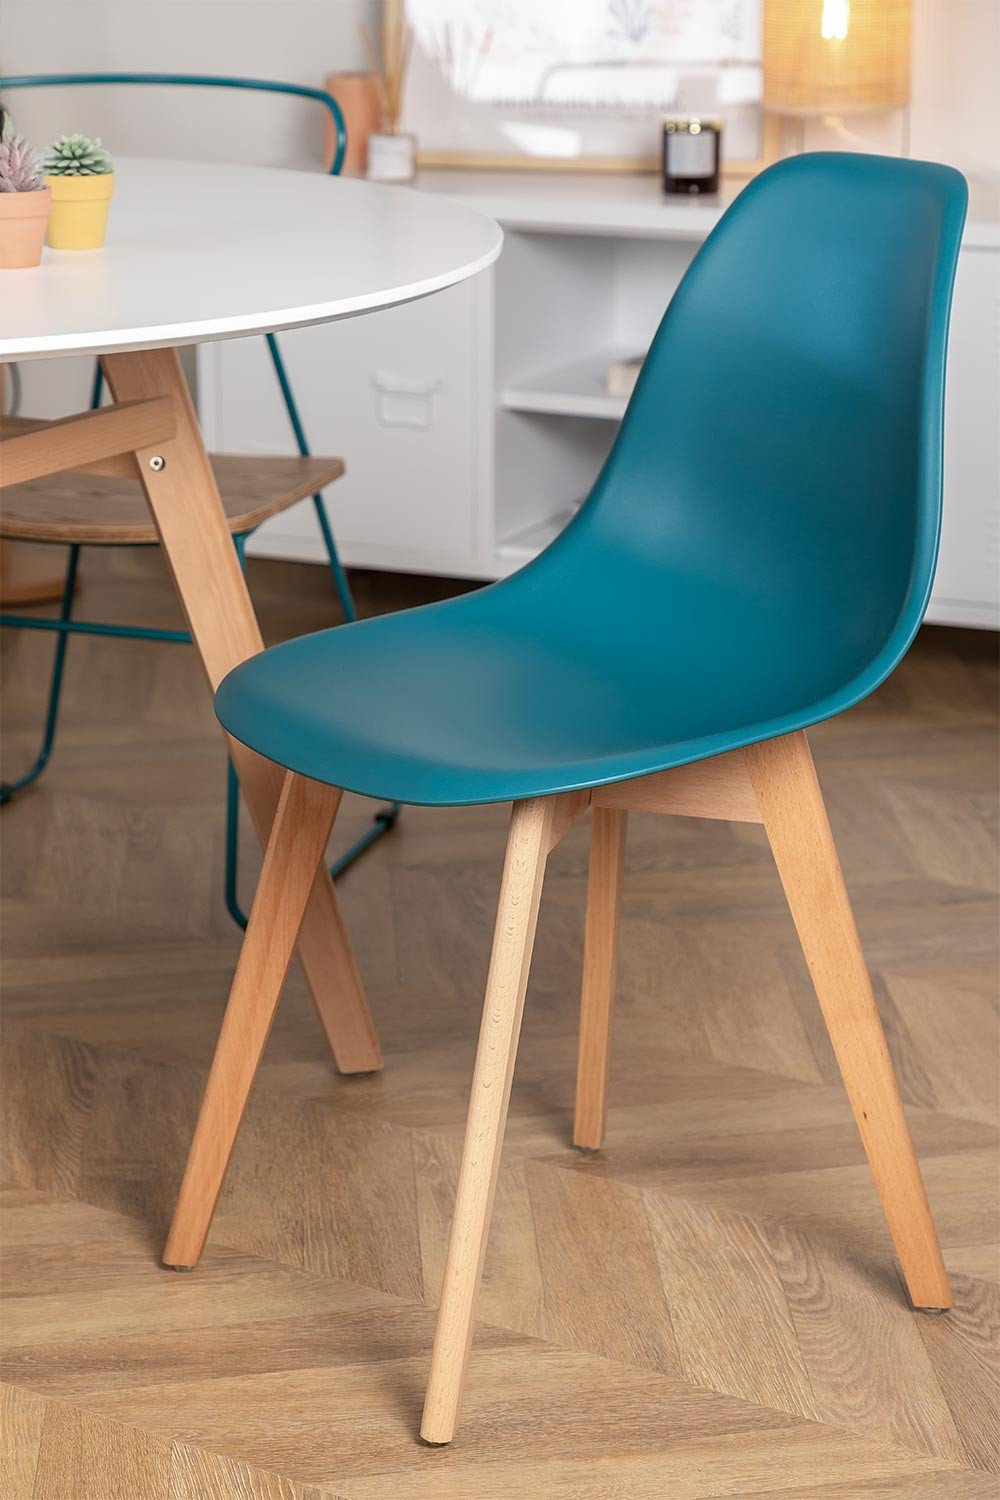 Nordic Brich Scand Chair, gallery image 1